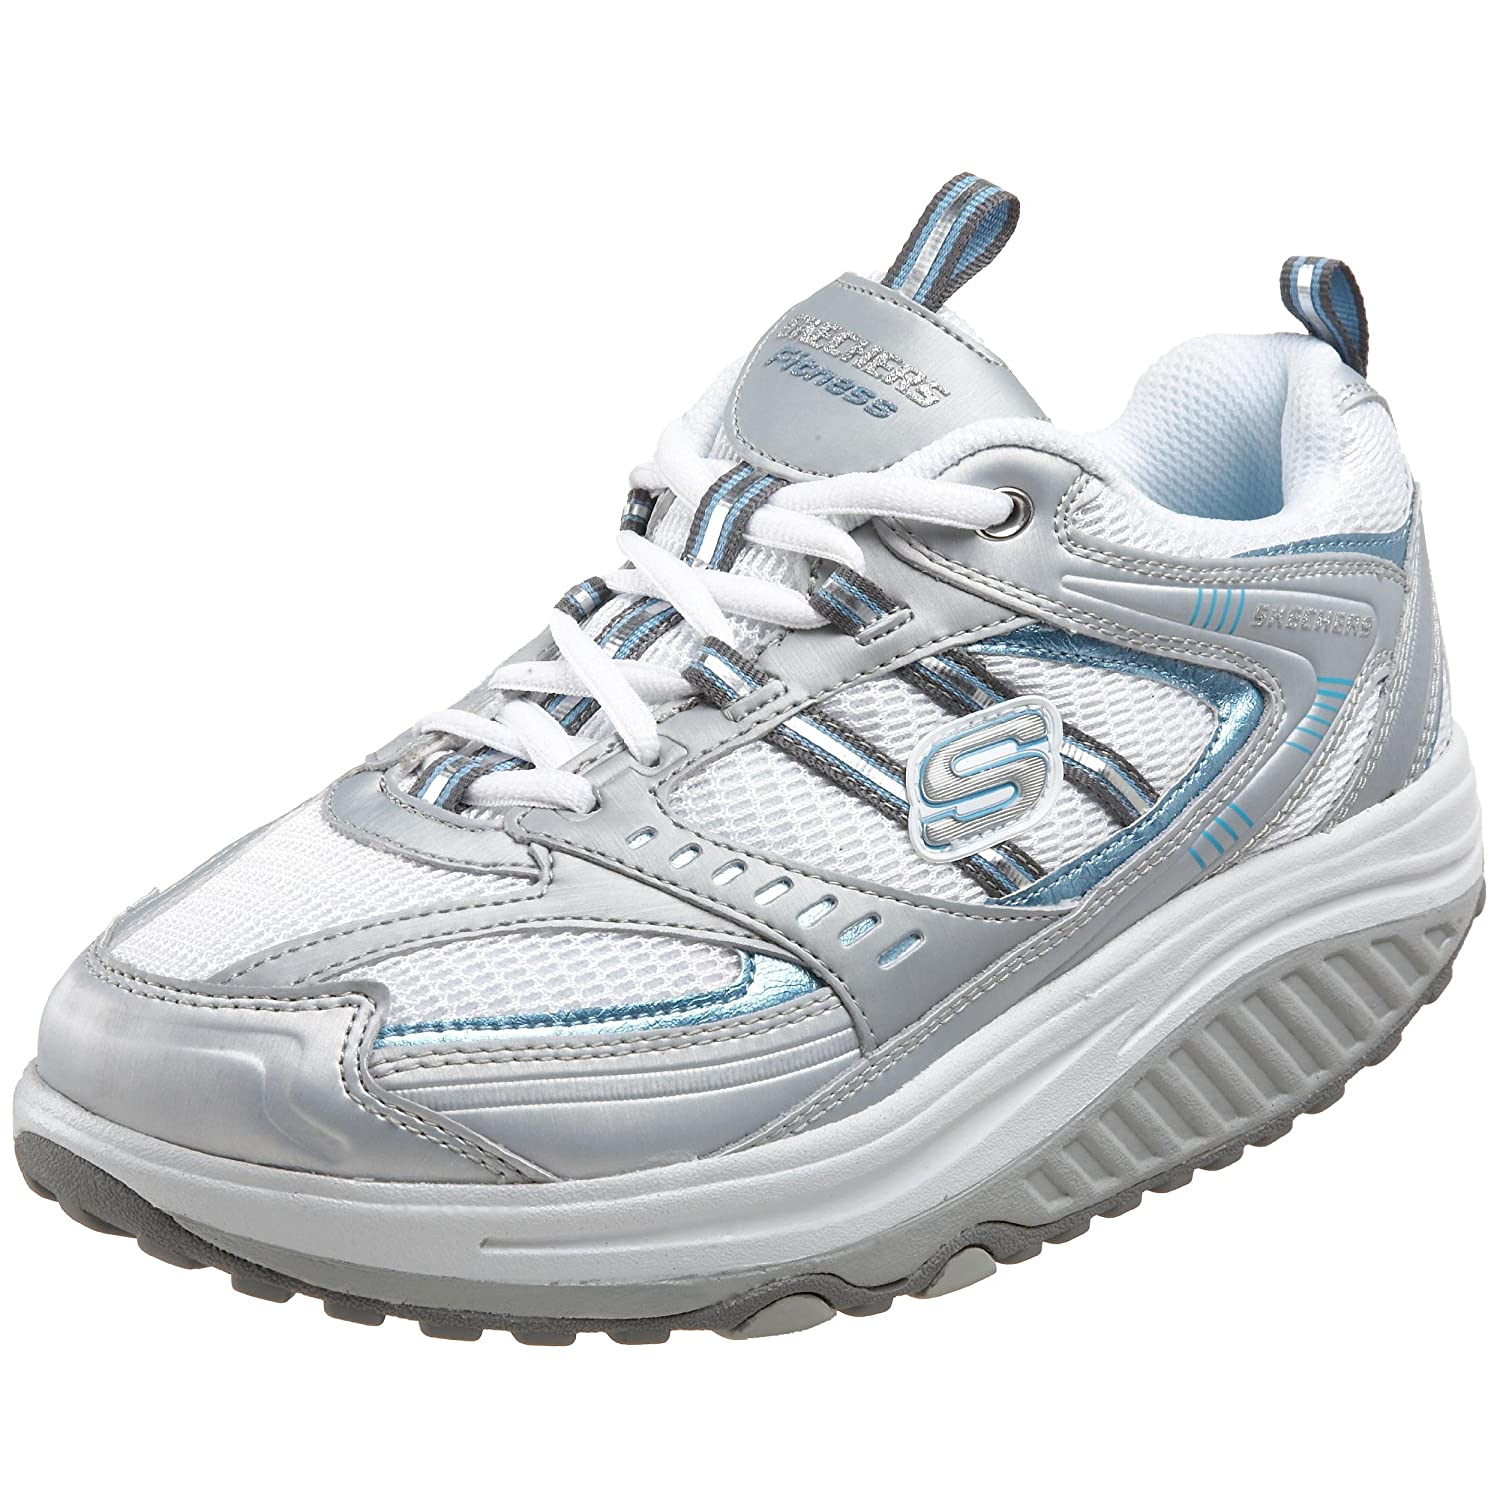 Skechers Women's Shape Ups Sneaker